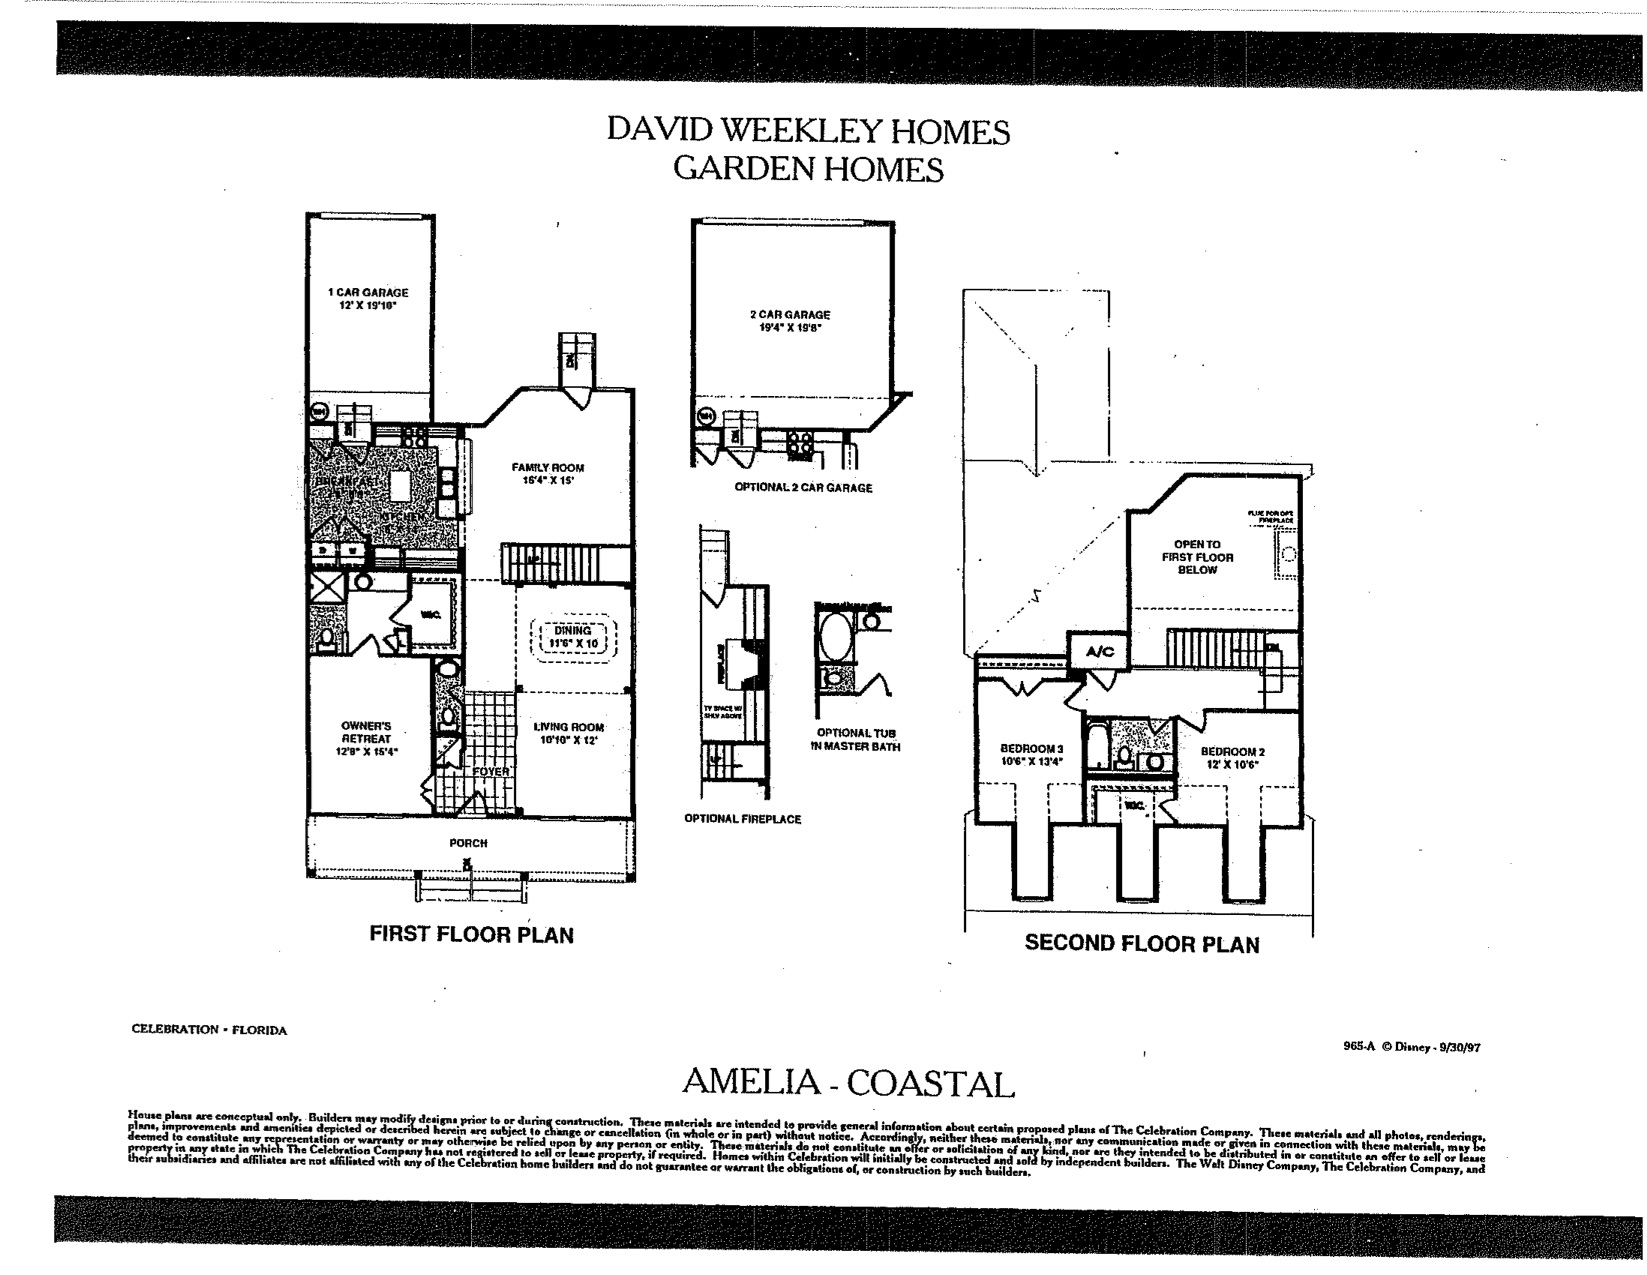 amelia coastal floorplan